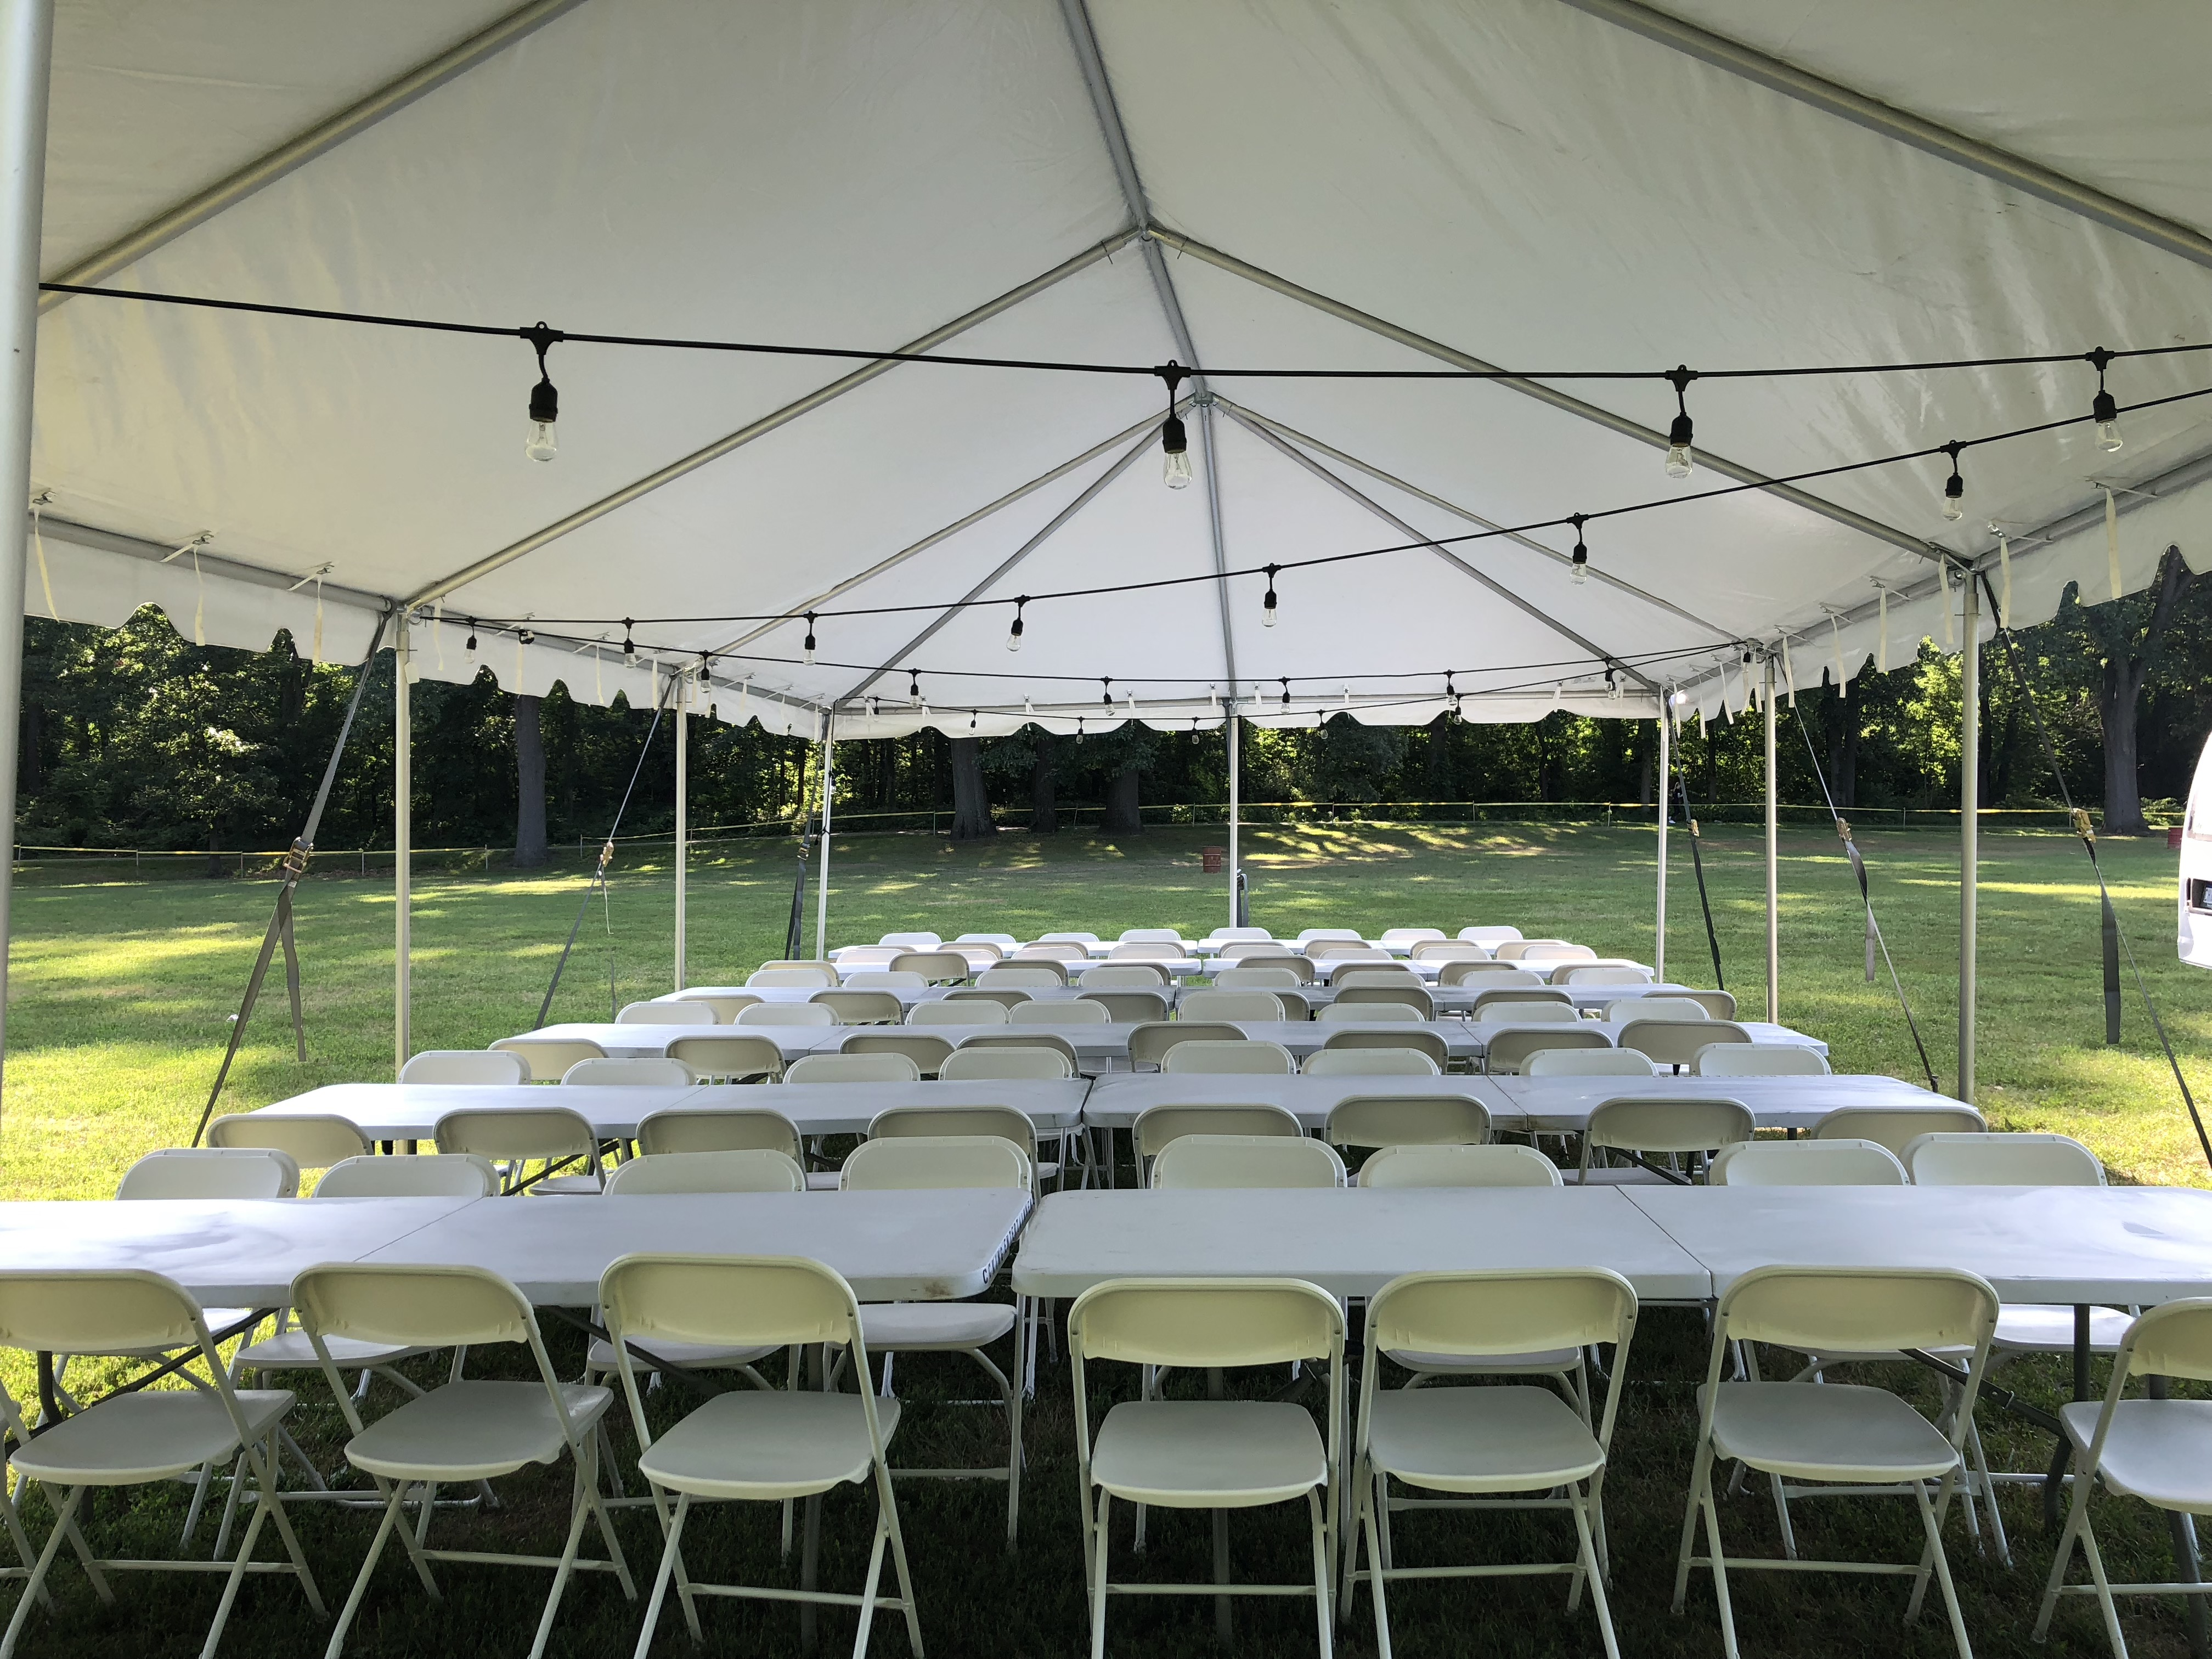 Where Can I Rent Tables And Chairs Table And Chair Rental Party Rentals Tc S Tents And Events